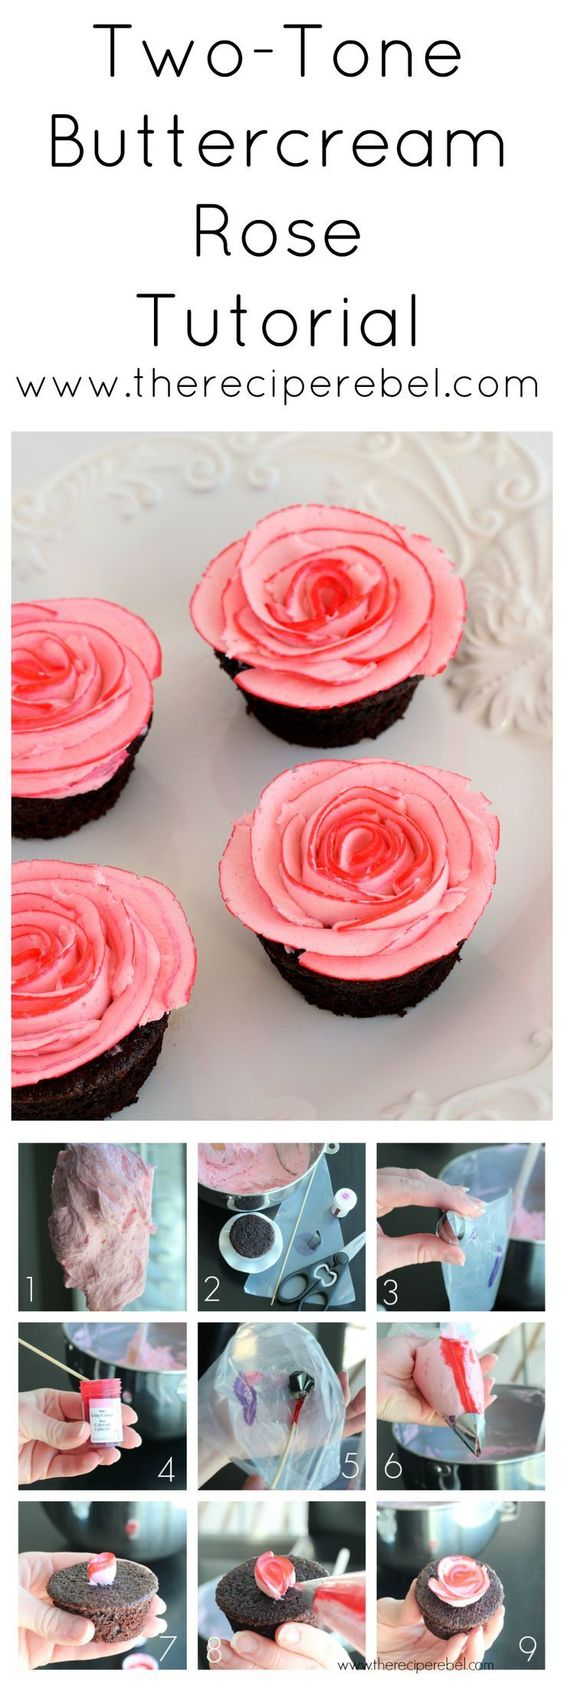 Fudgy Chocolate Cupcakes with Two-Tone Rose Tutorial: perfect for Valentine's Day! Or change up the colors for any holiday or birthday you like! www.thereciperebel.com